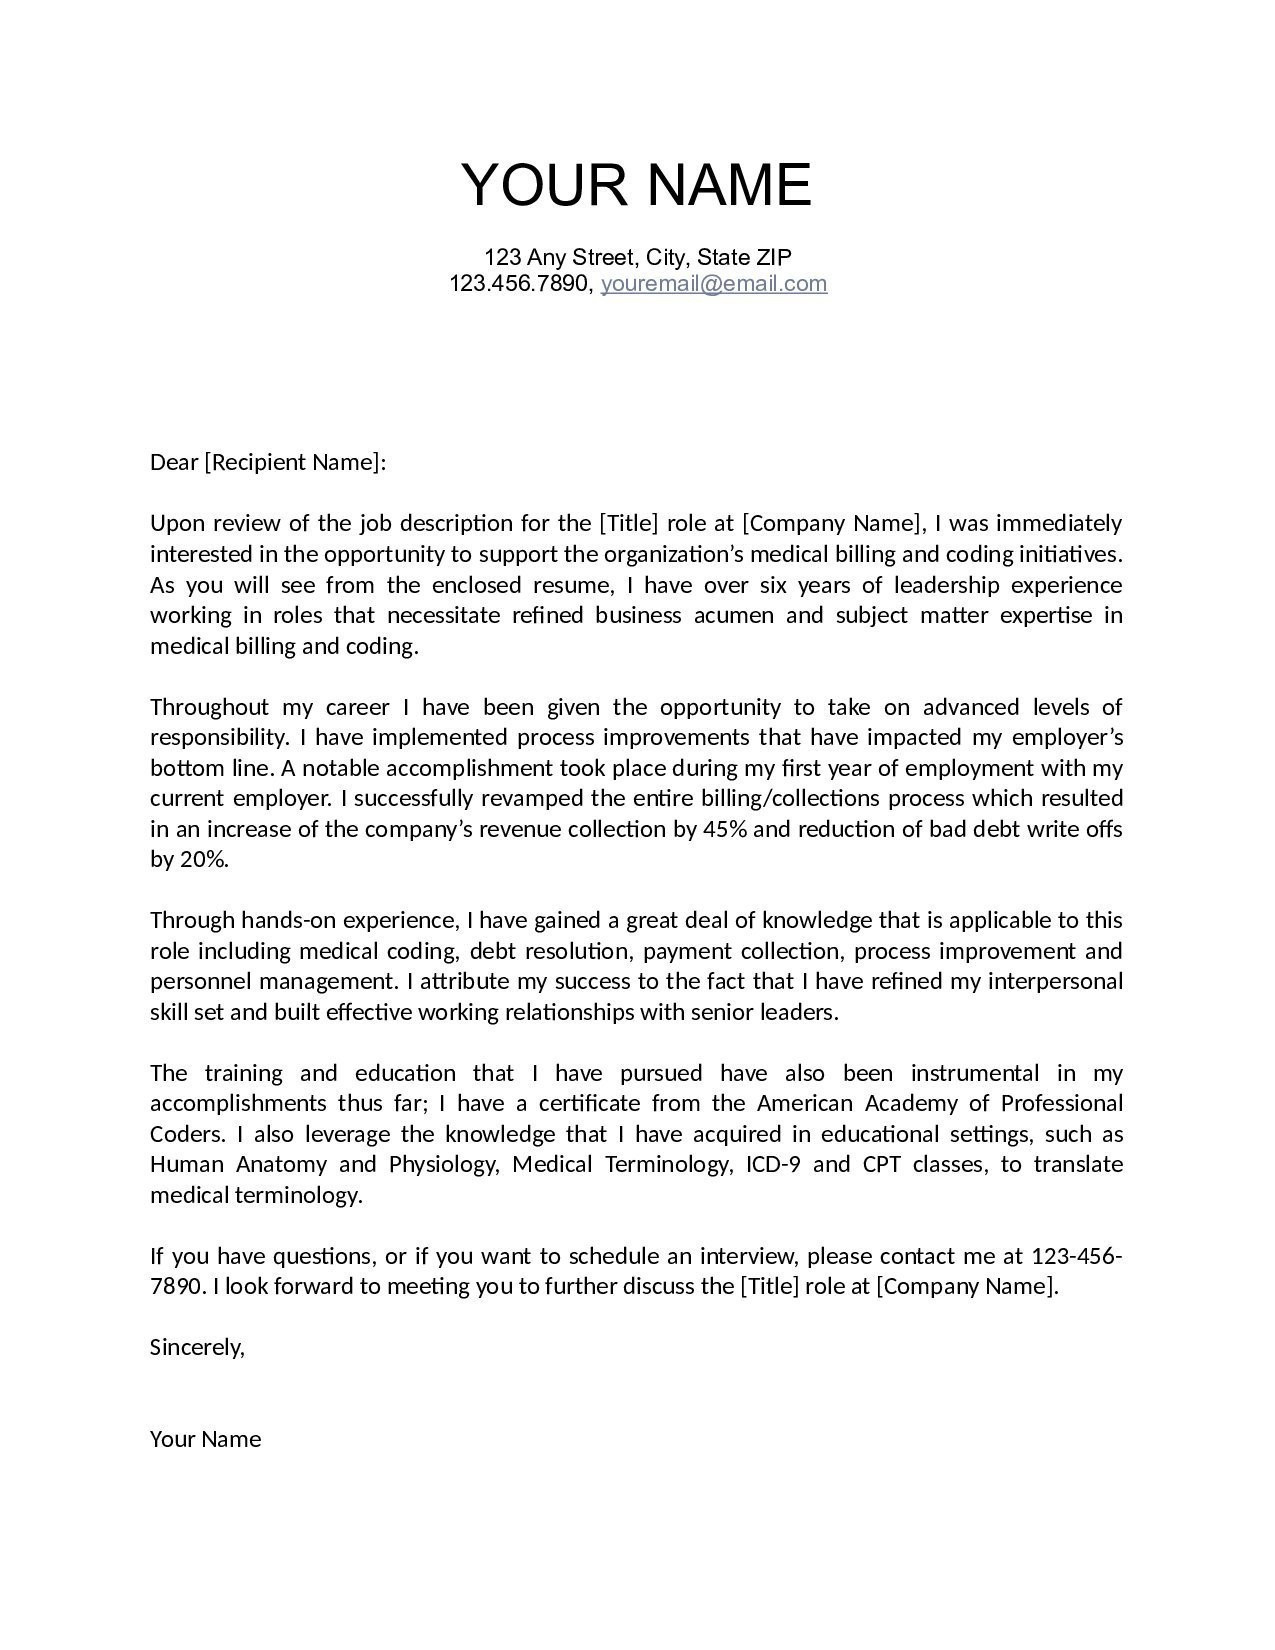 Rescission Letter Template - Singular Real Estate Investment Cover Letter